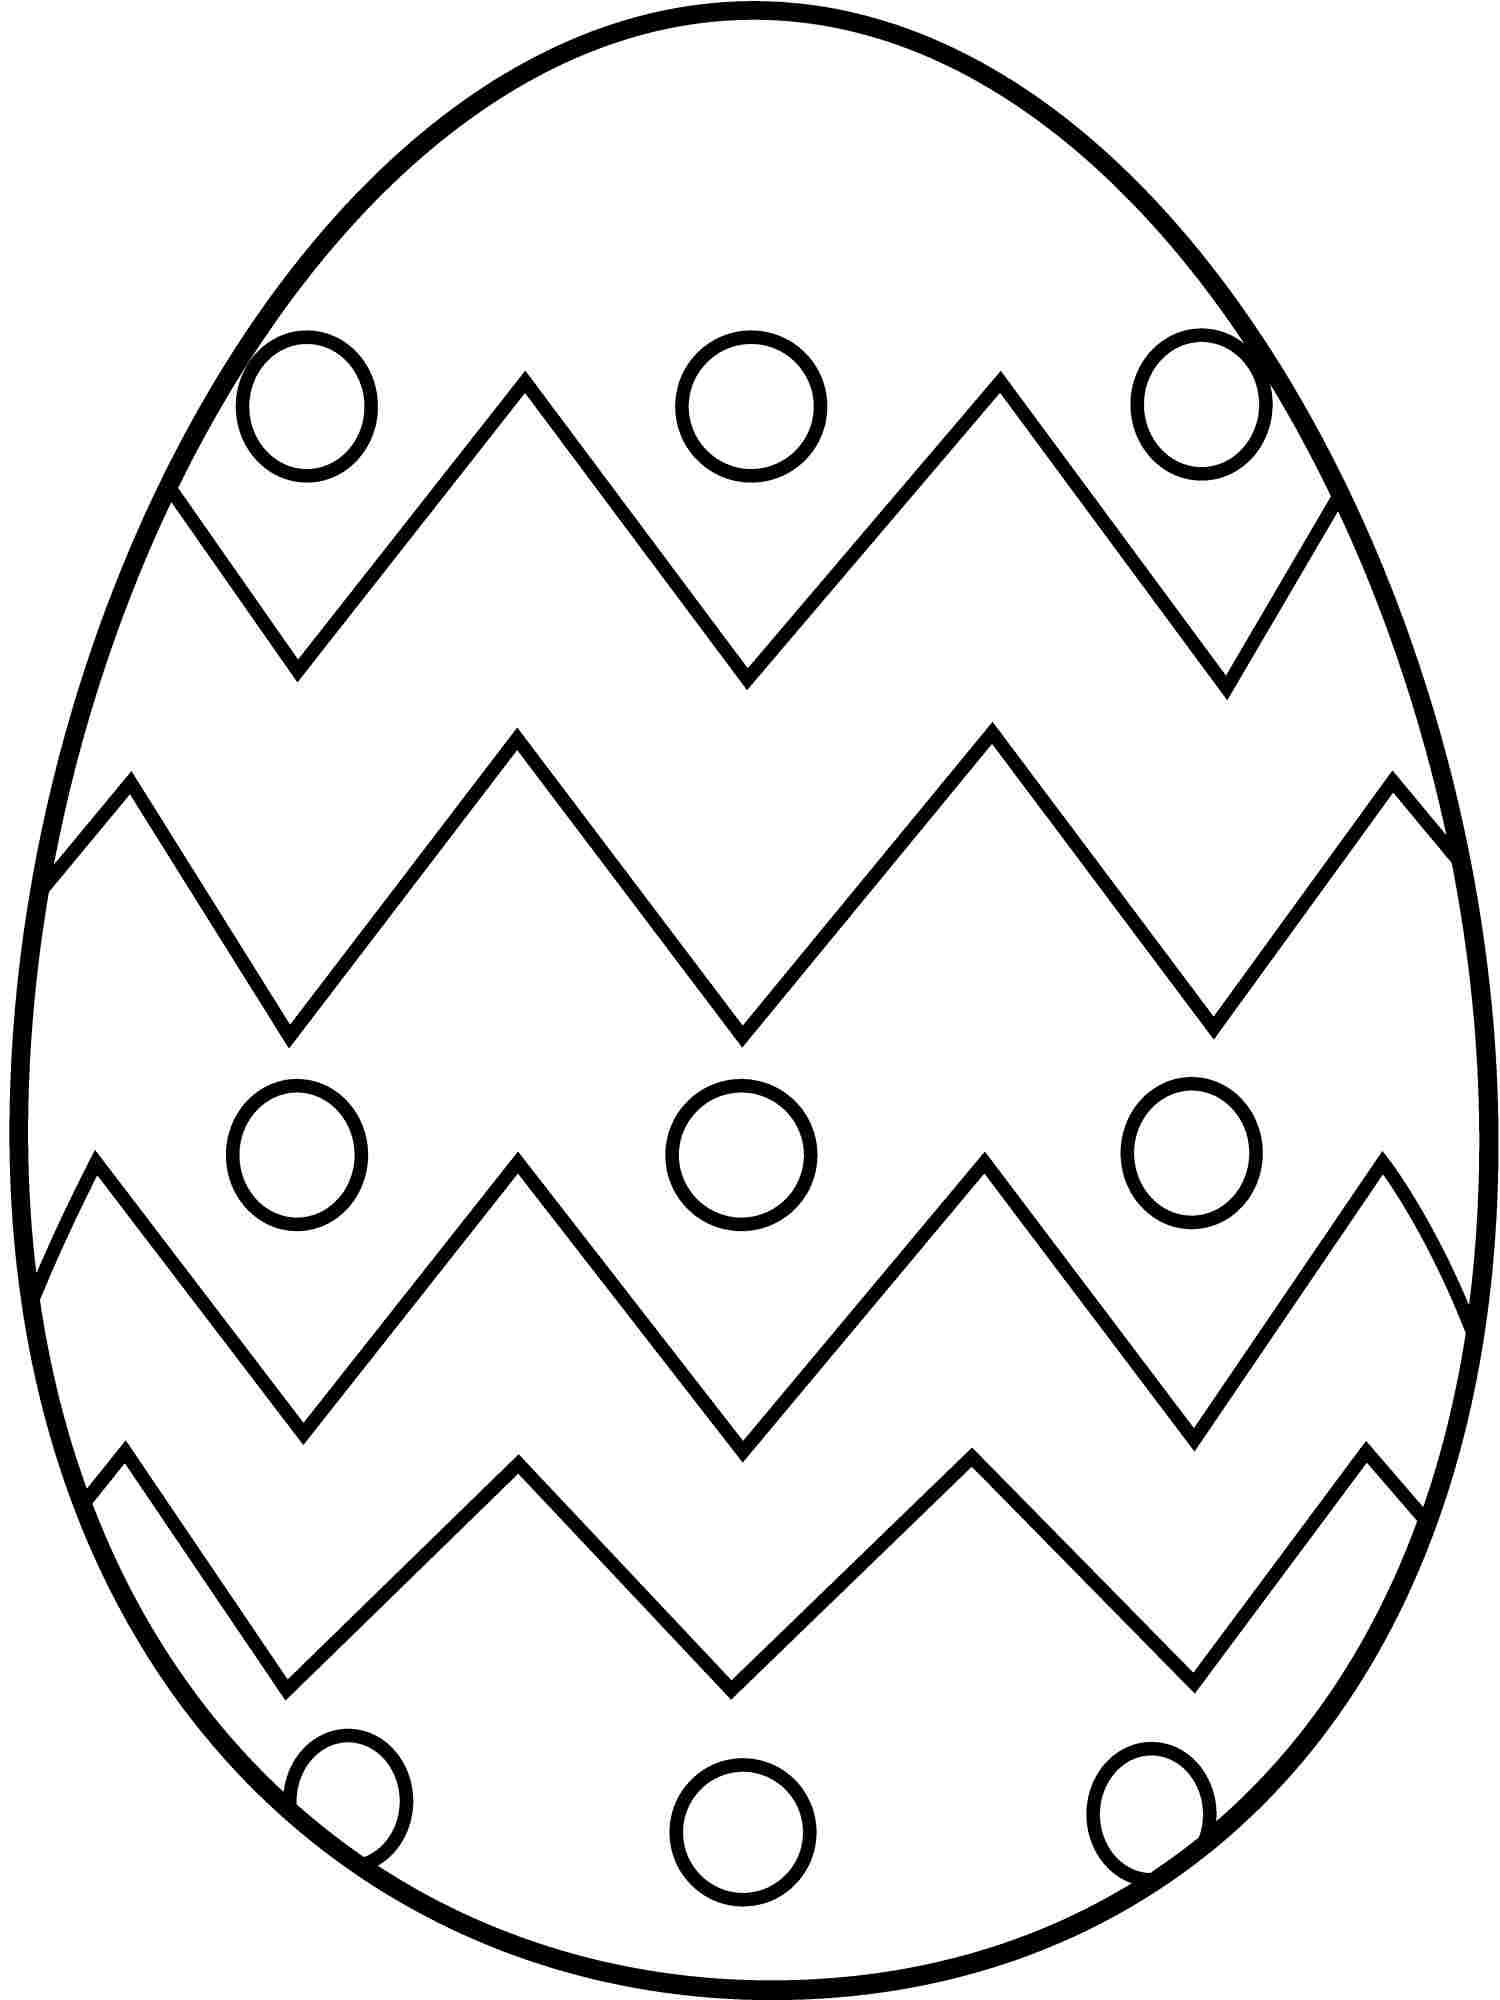 Easter is the earliest and most significant festival for